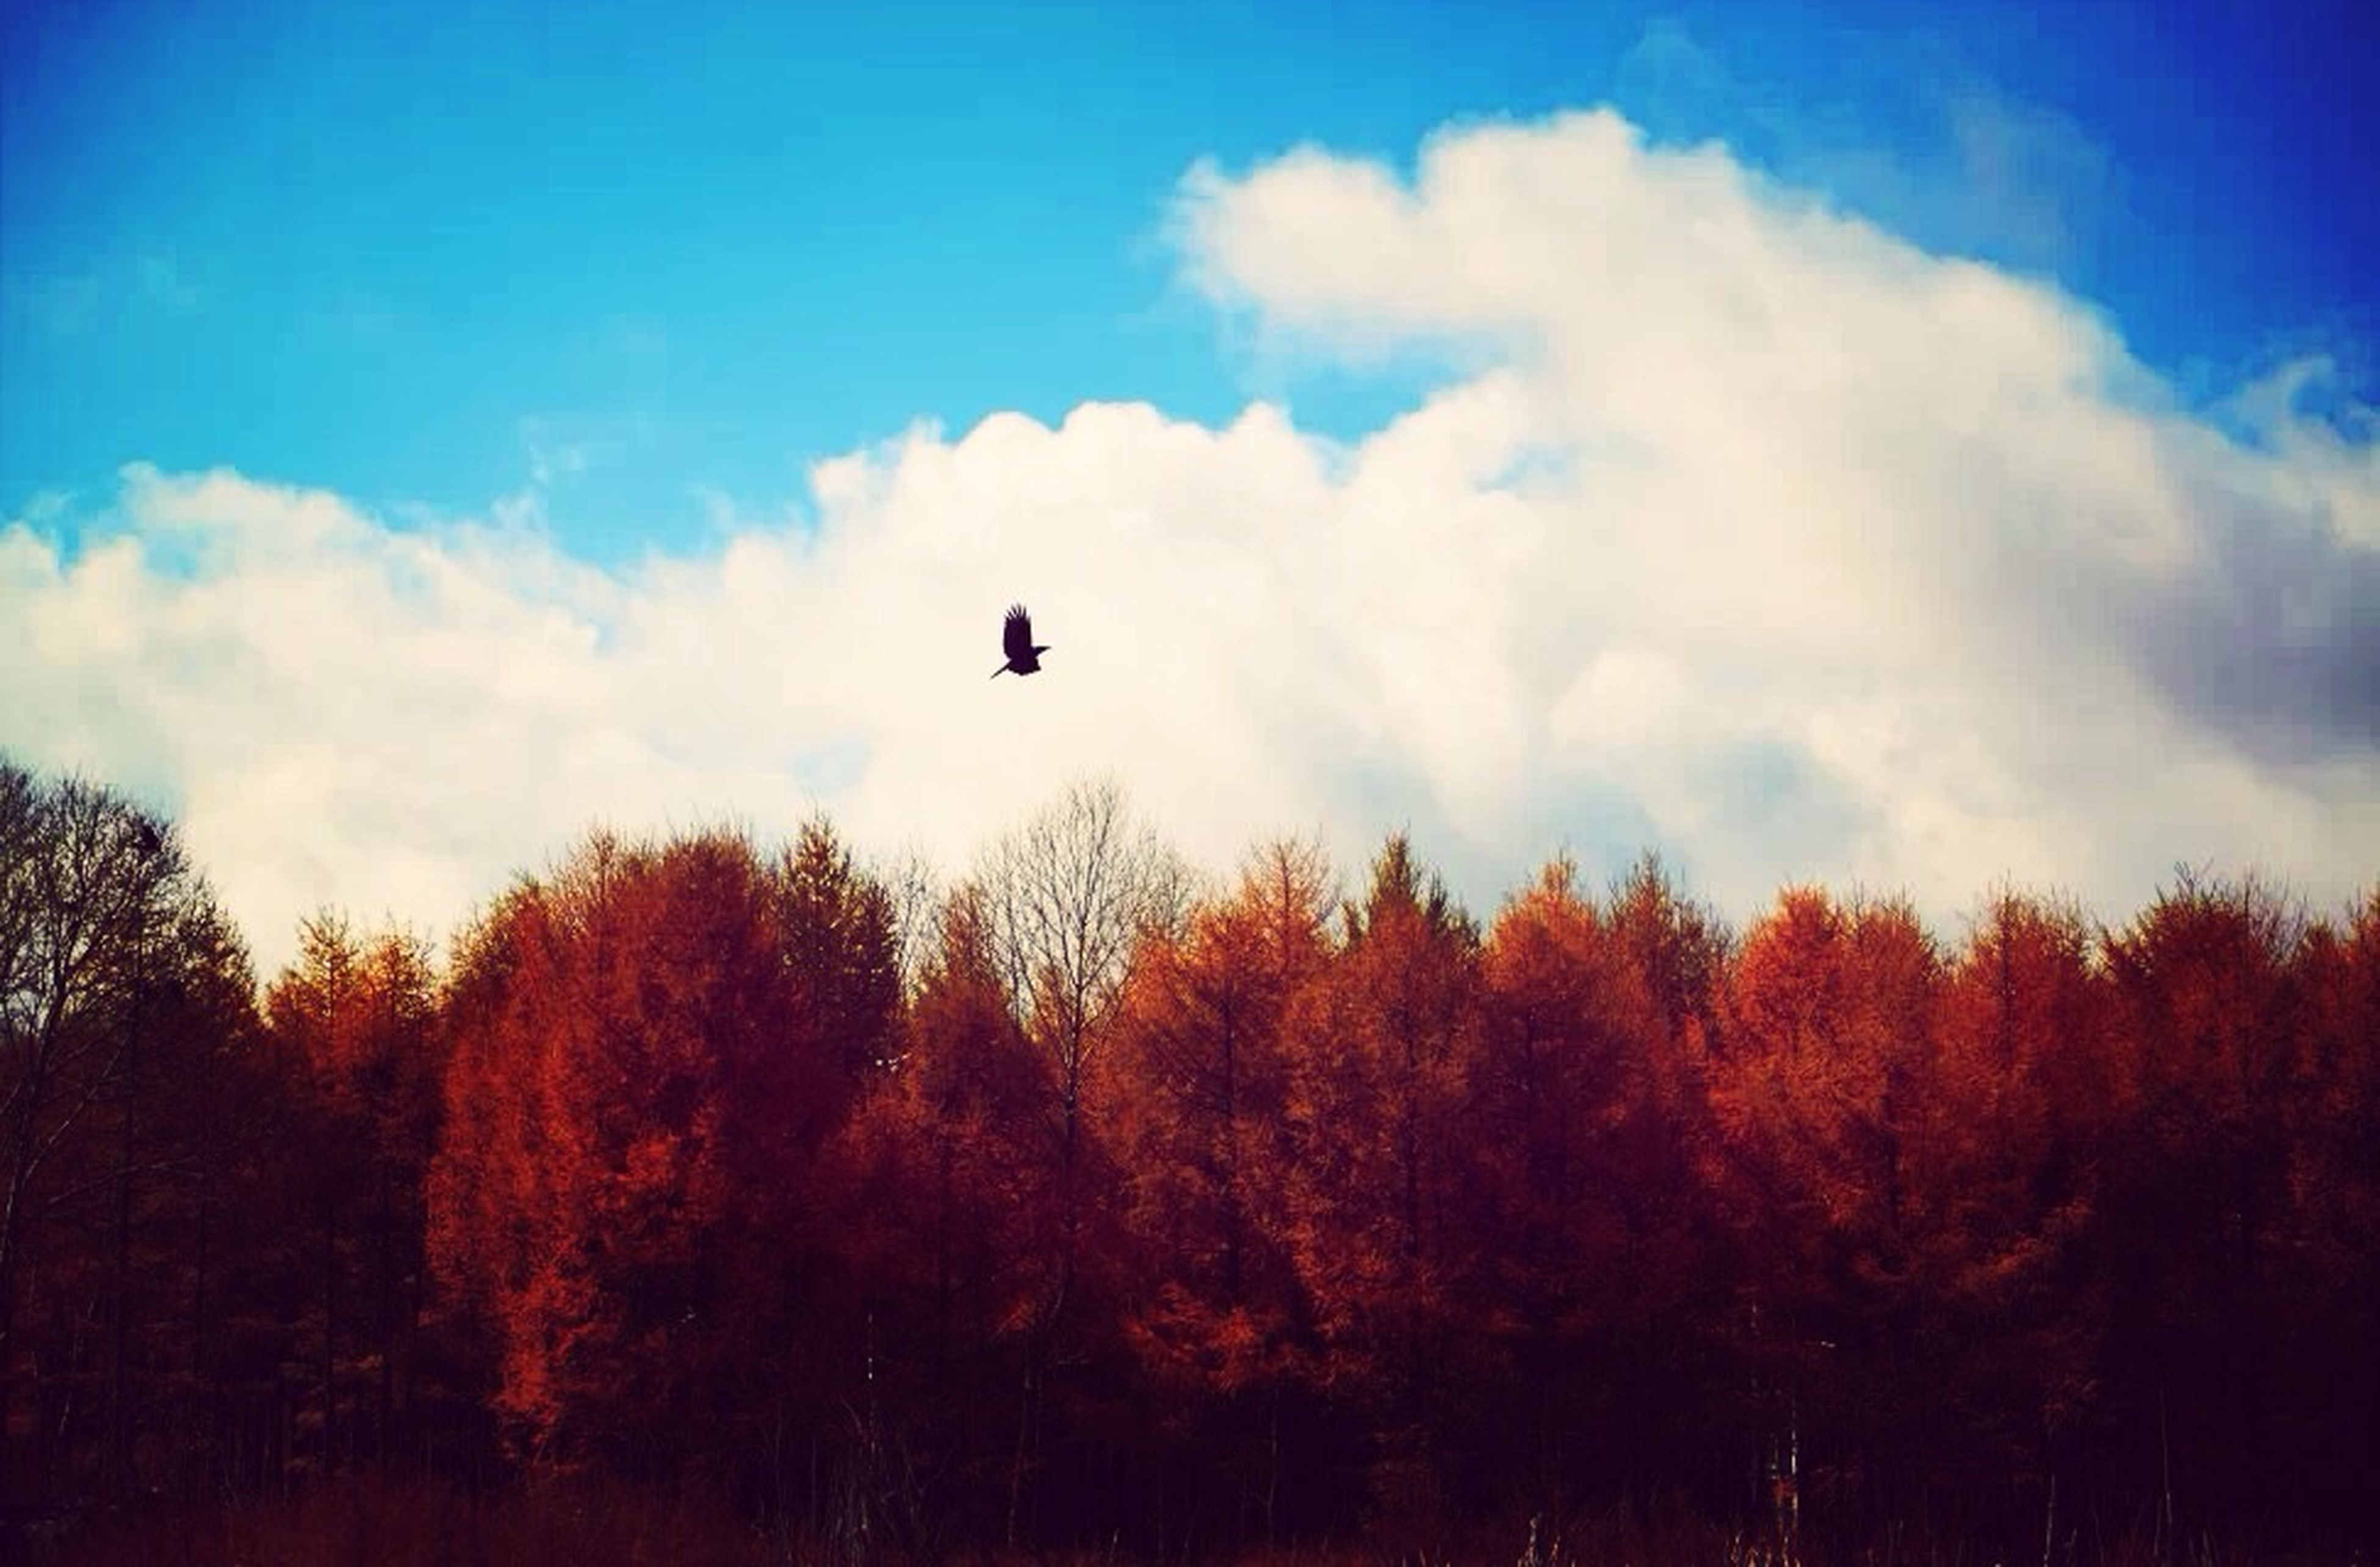 flying, tree, sky, bird, low angle view, mid-air, silhouette, animal themes, cloud - sky, nature, one animal, animals in the wild, beauty in nature, wildlife, tranquility, scenics, cloud, tranquil scene, sunset, outdoors